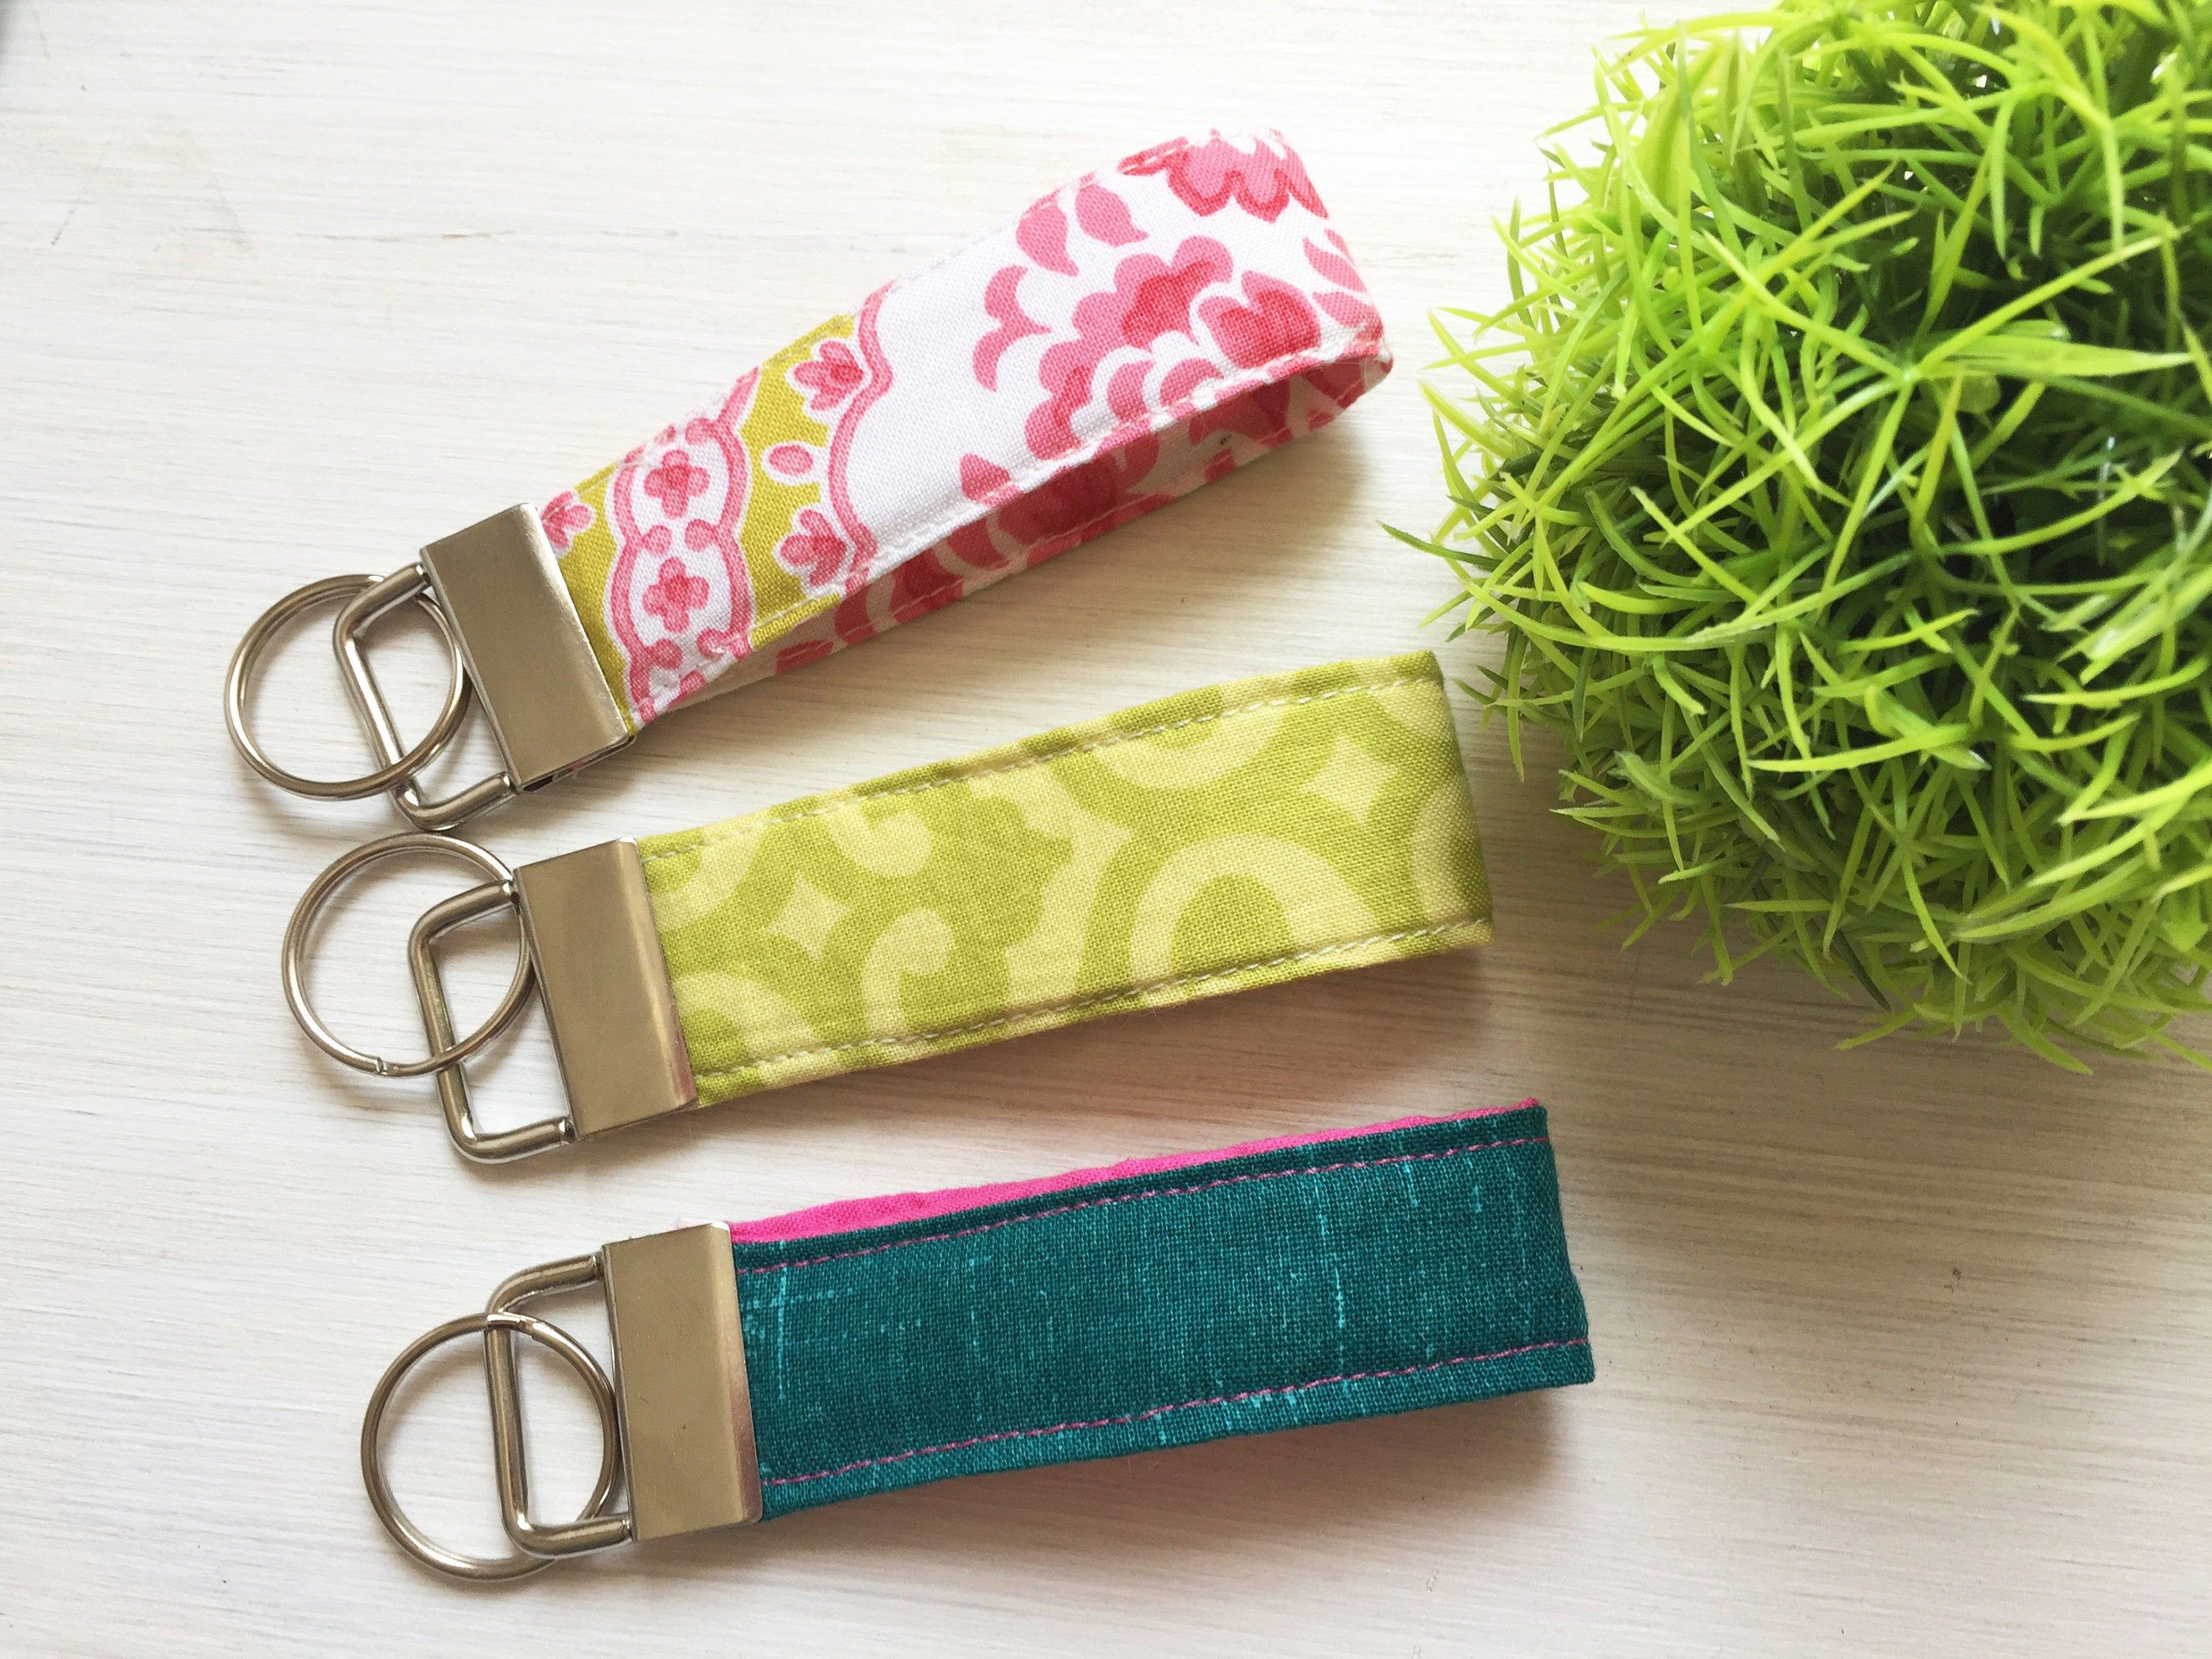 Fabric mini key chains accessories ready to ship